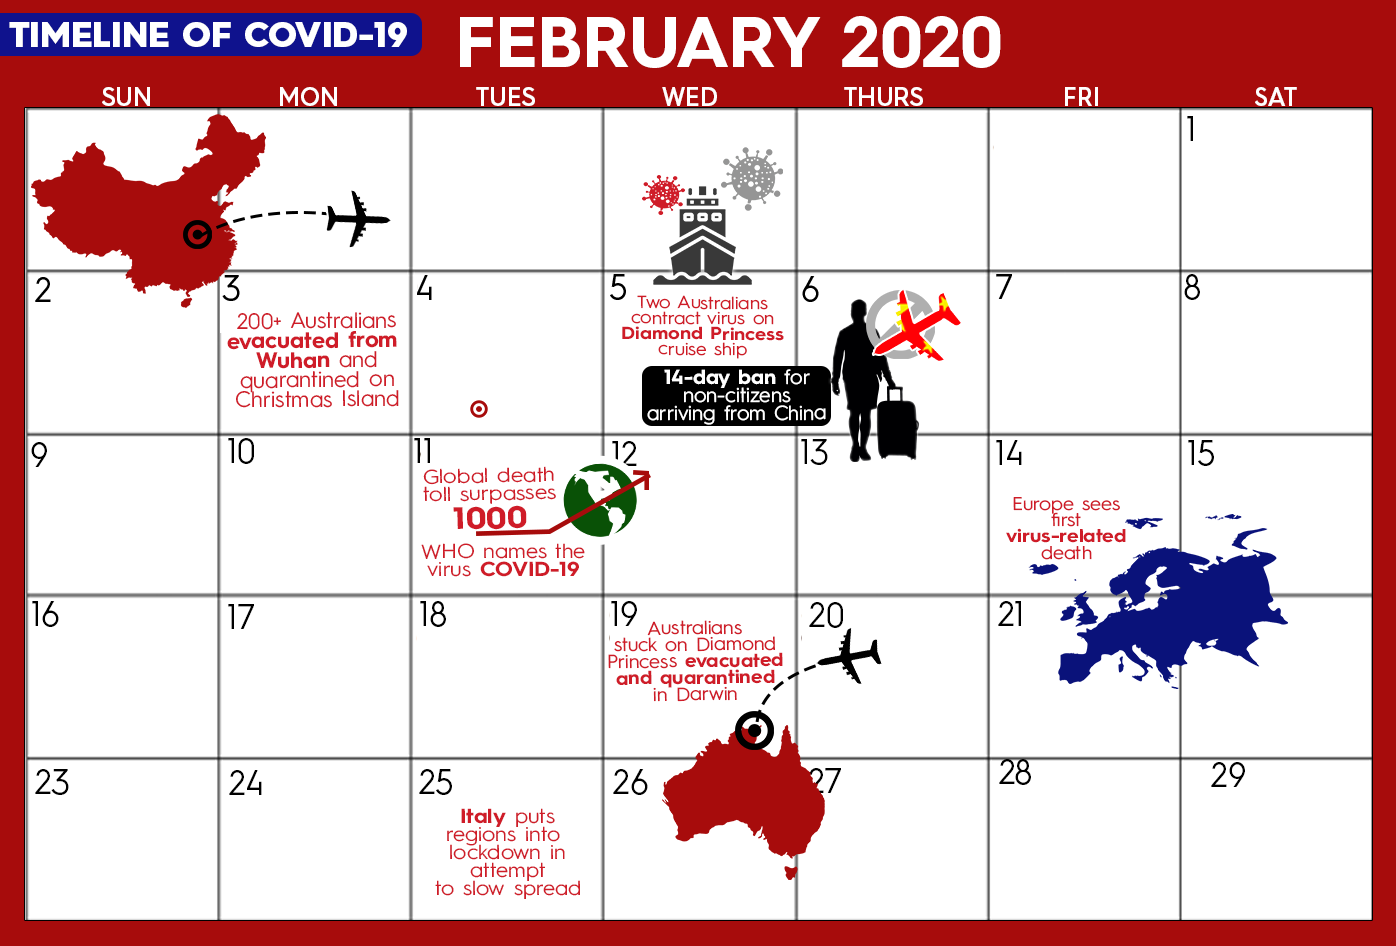 A timeline of COVID-19 in February 2020.